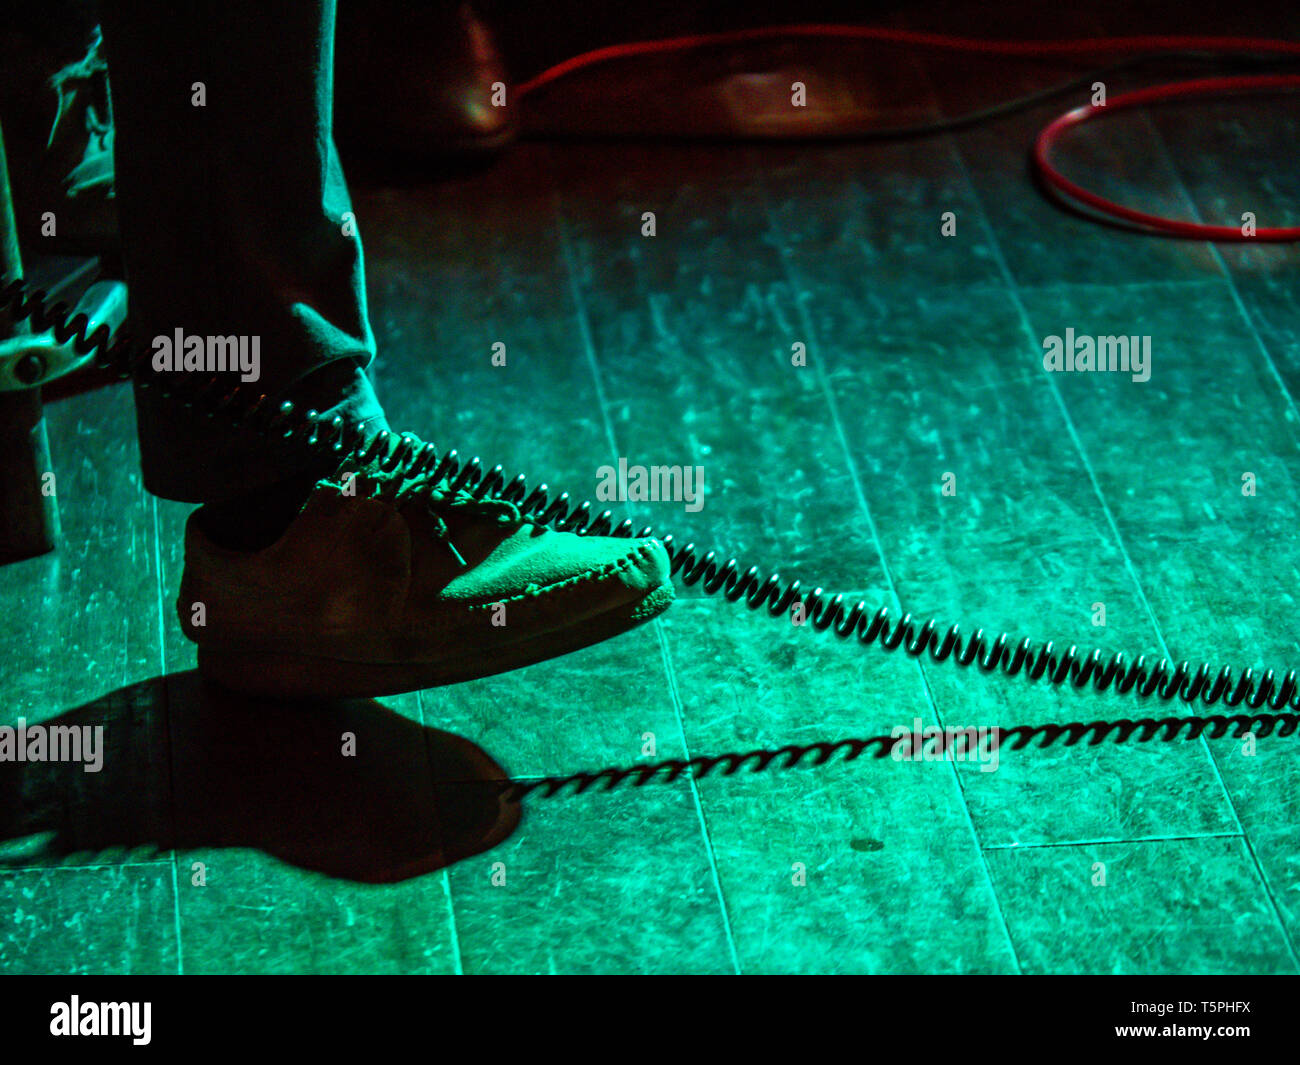 Foot tapping in rhythm of musical performance in a dimly lit stage - Stock Image